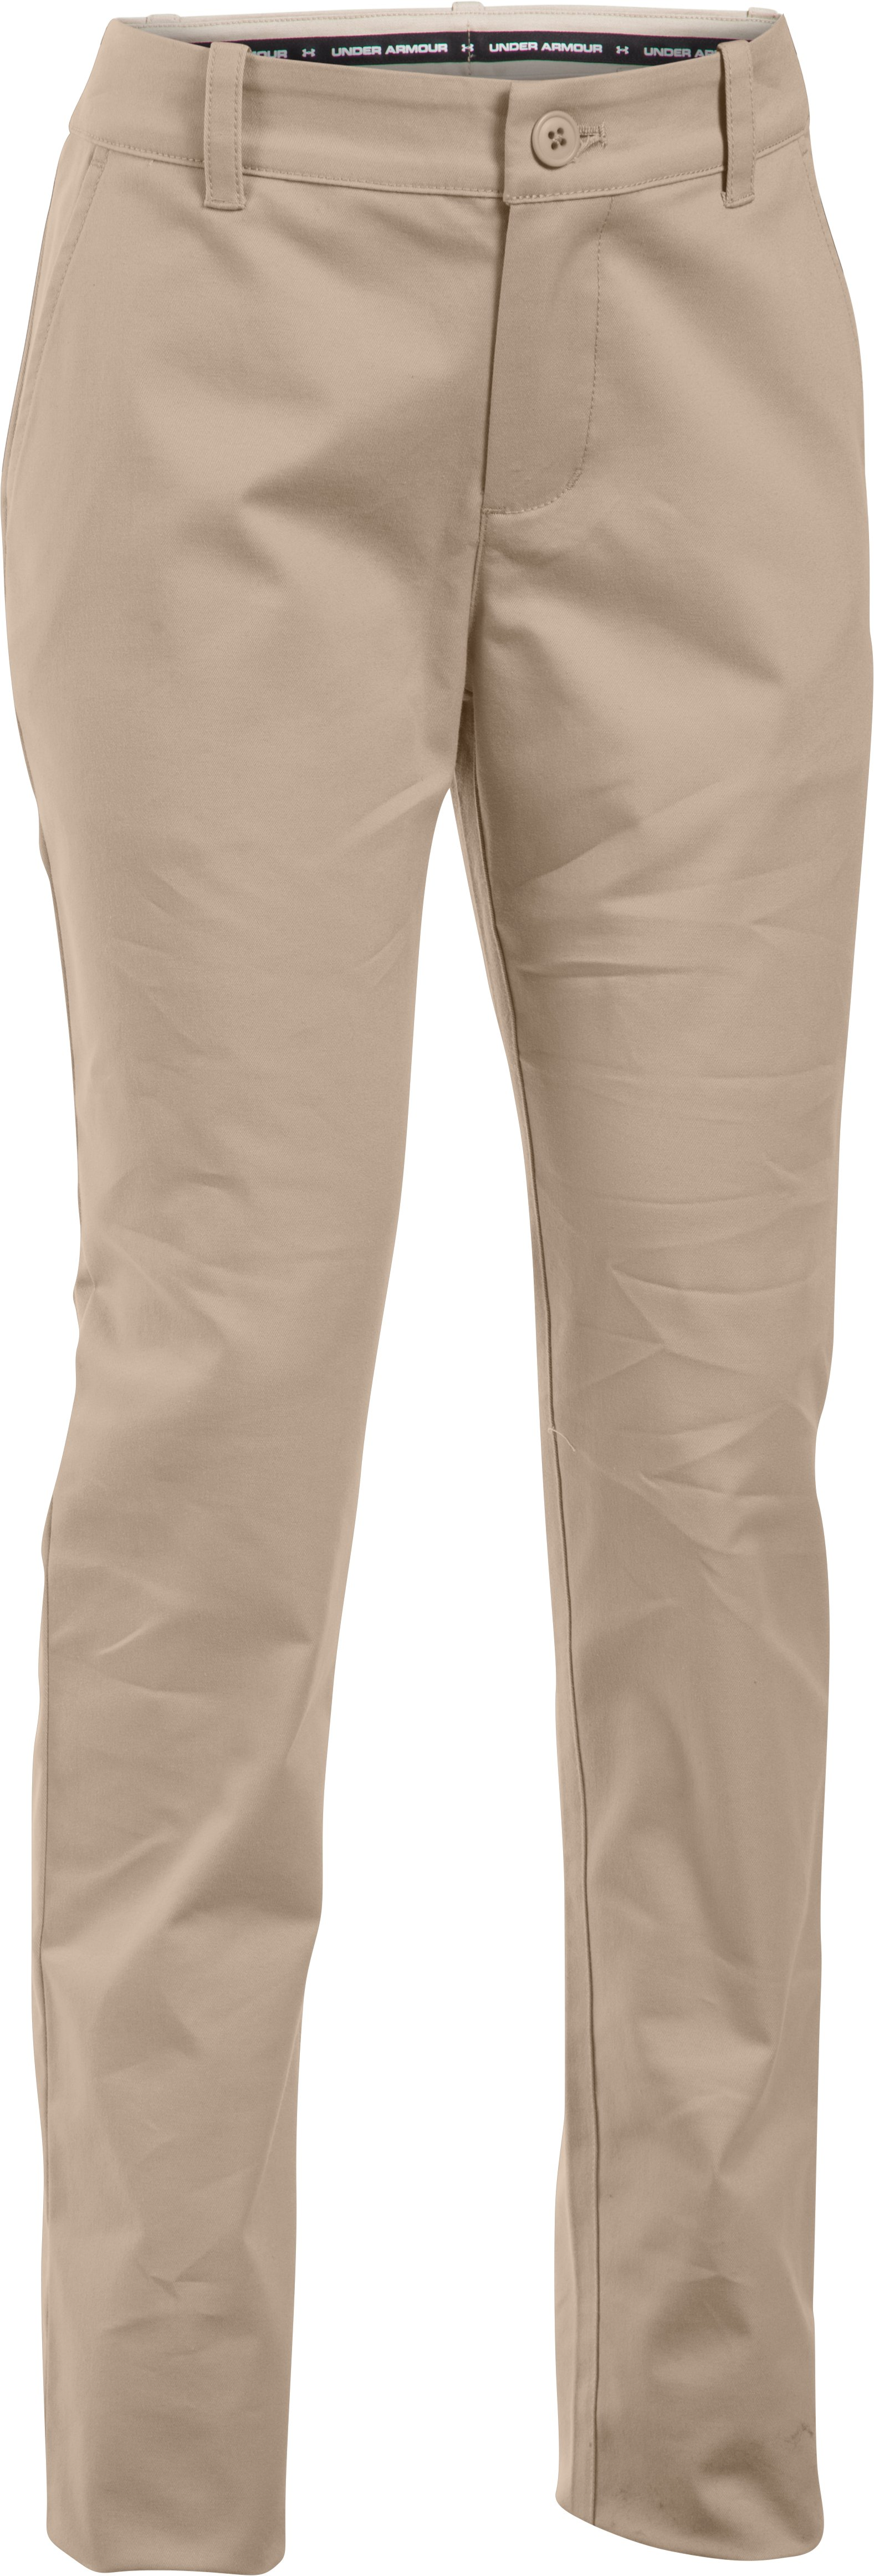 Girls' UA Uniform Chino Pants – Plus Size, Desert Sand